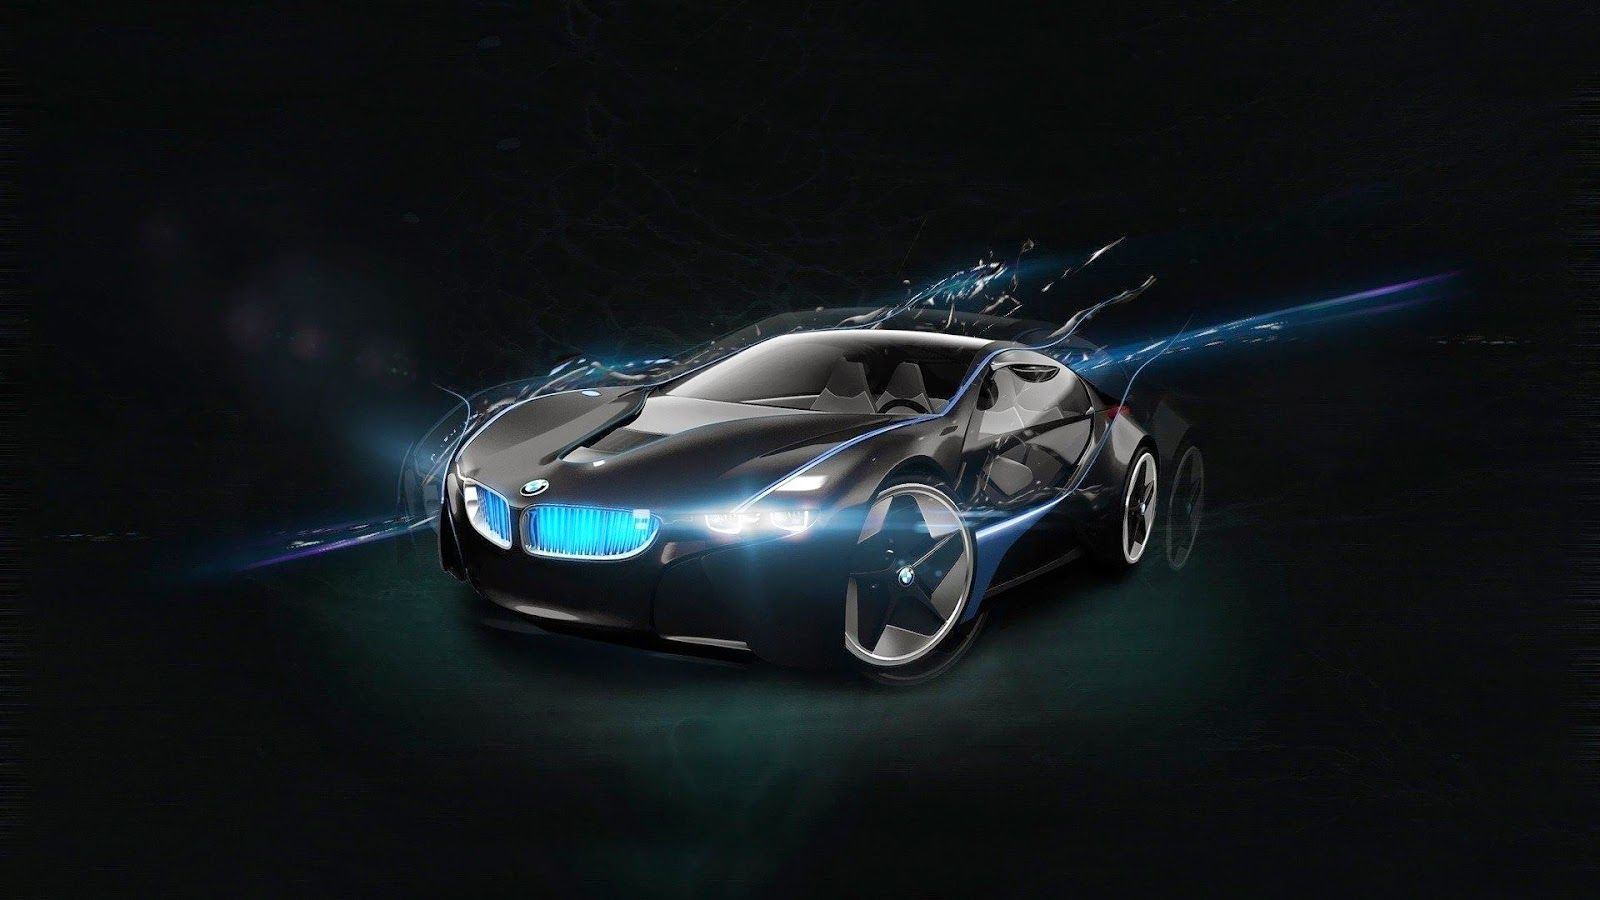 Bmw Car High Resolution Wallpapers Pictures Download Free New Bmw